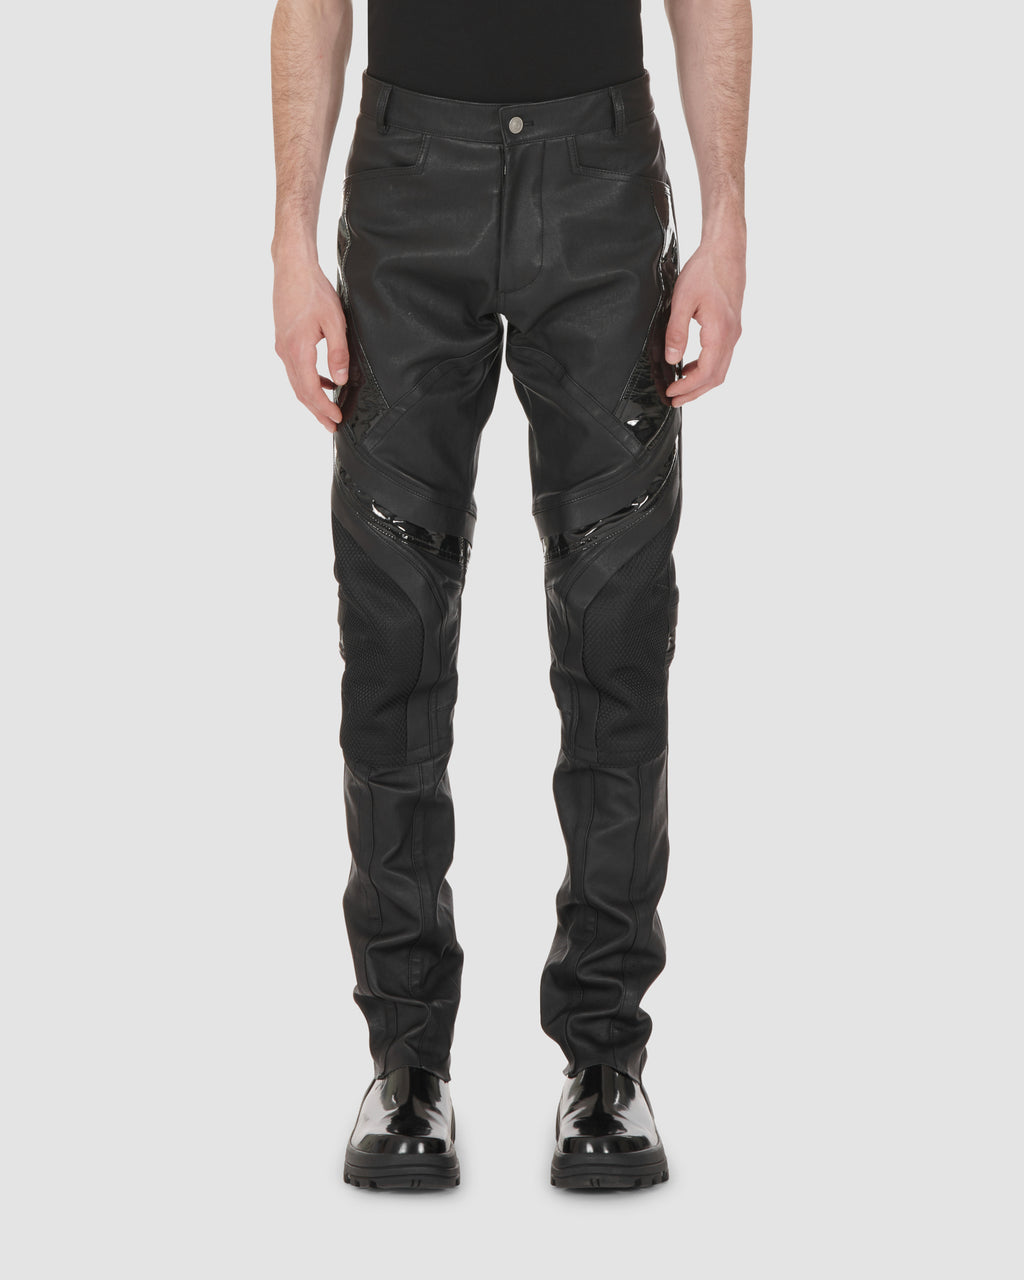 1017 ALYX 9SM | ZONE-9 MOTO PANT | Pants | BLACK, Google Shopping, Man, MEN, PANTS, S20, SS20, Trousers